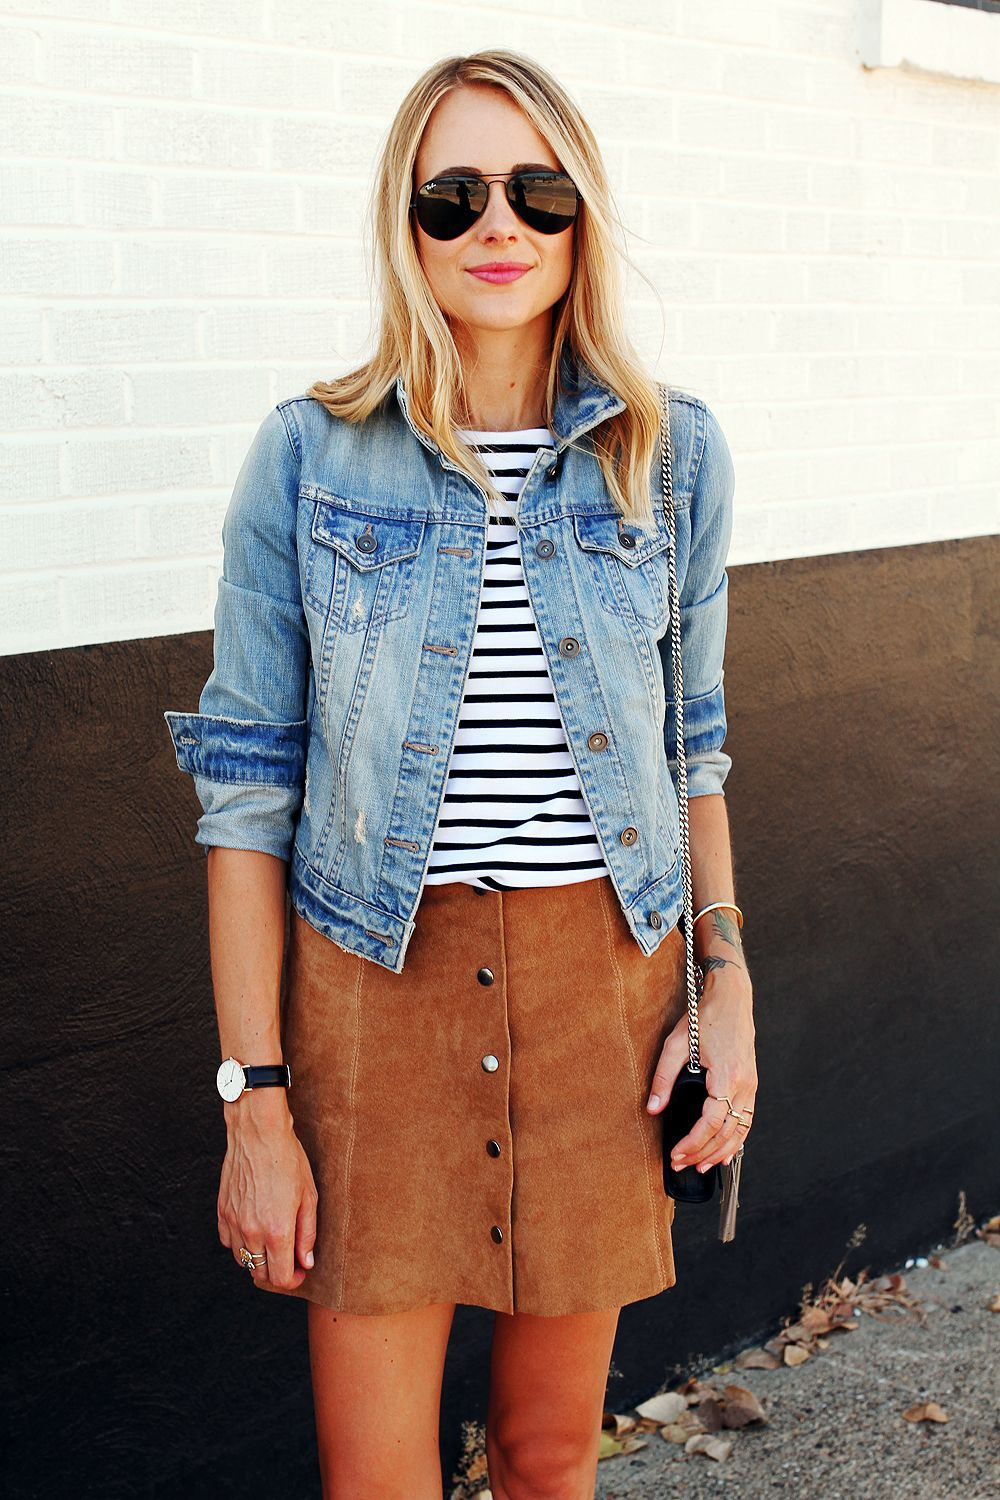 Tan suede skirt outfit, street fashion, jean jacket